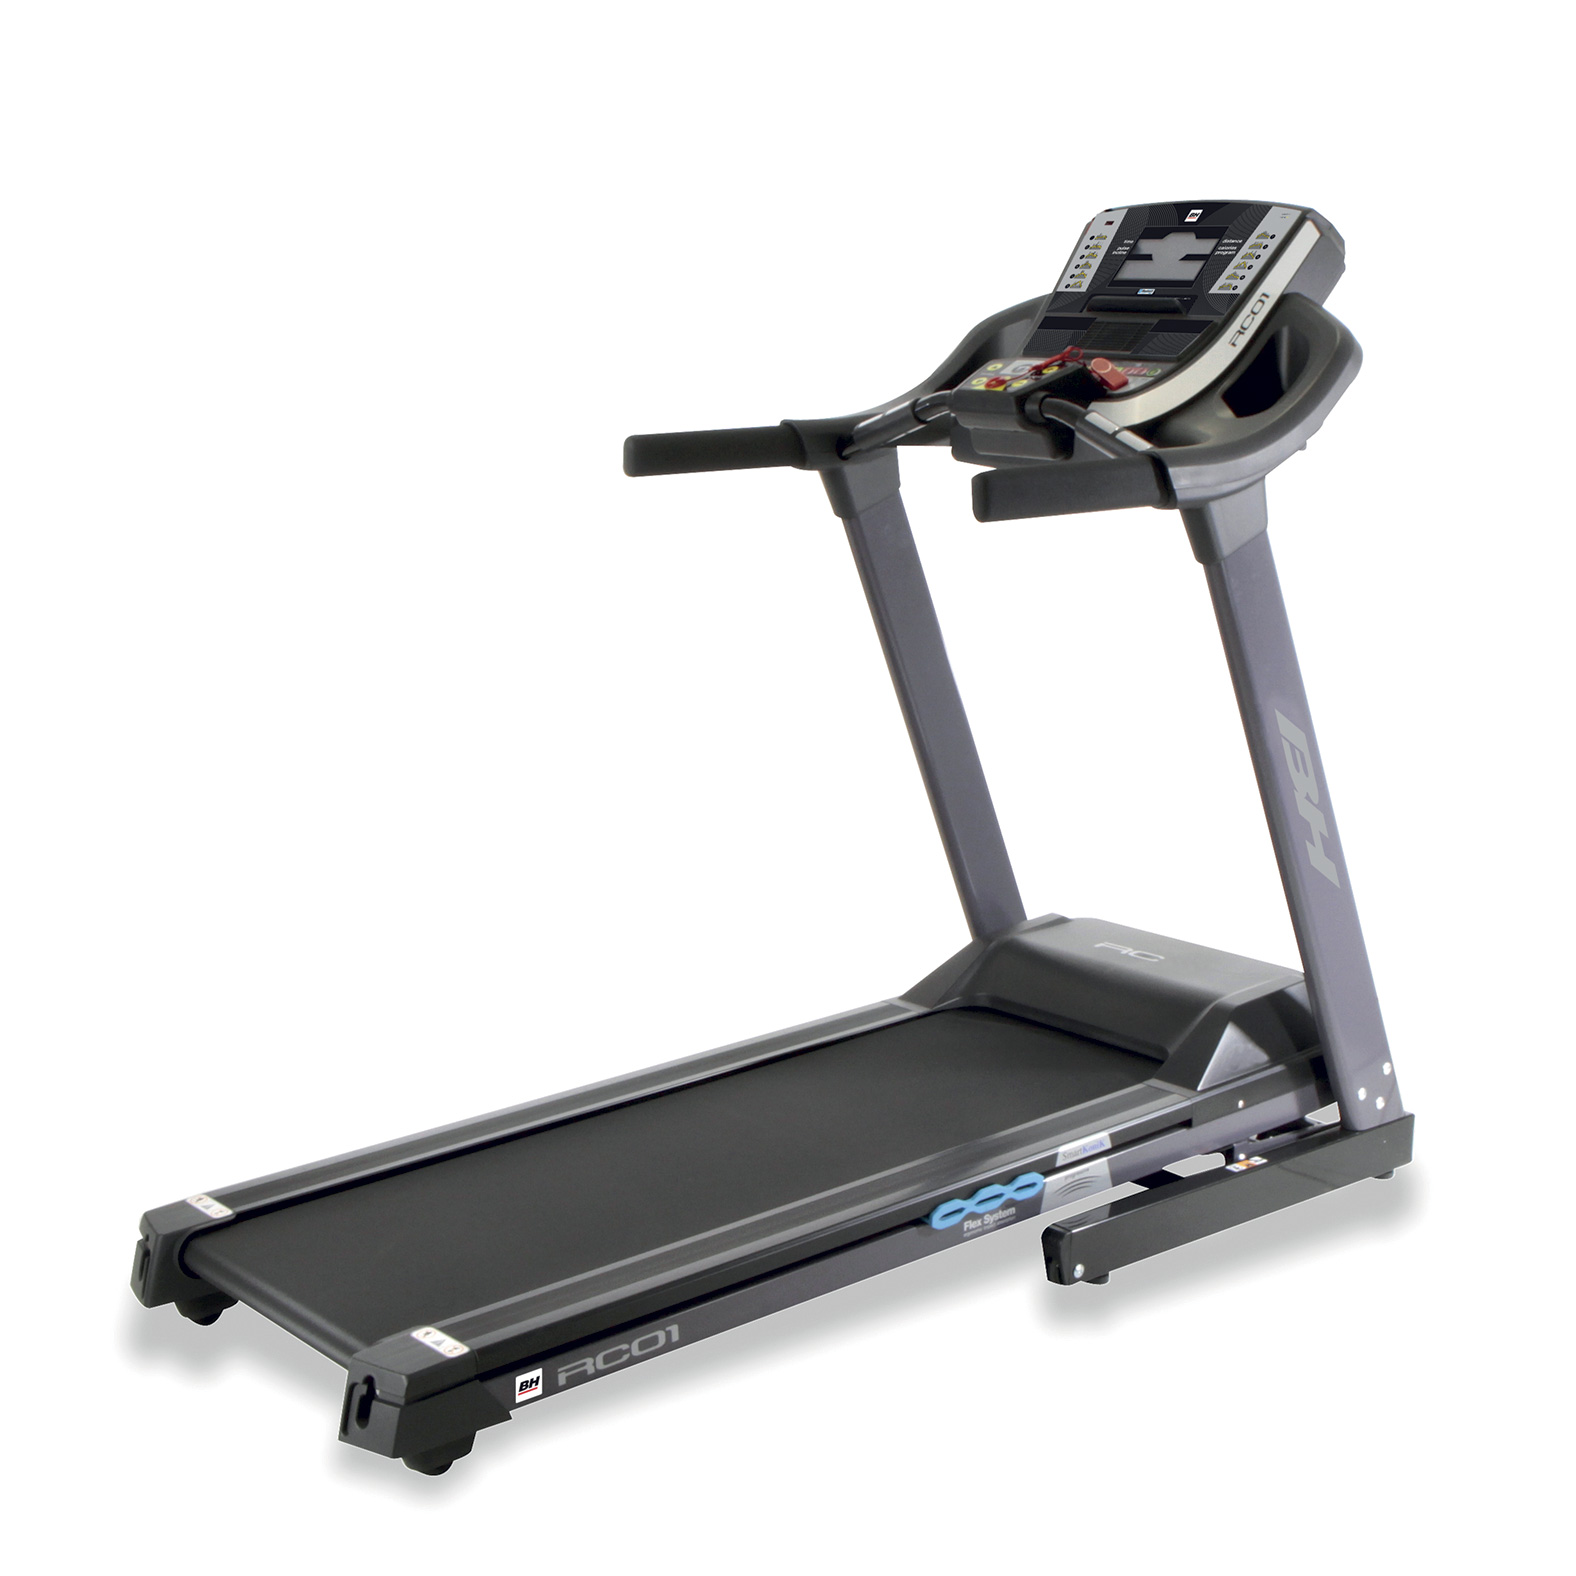 Bh fitness i.RC01